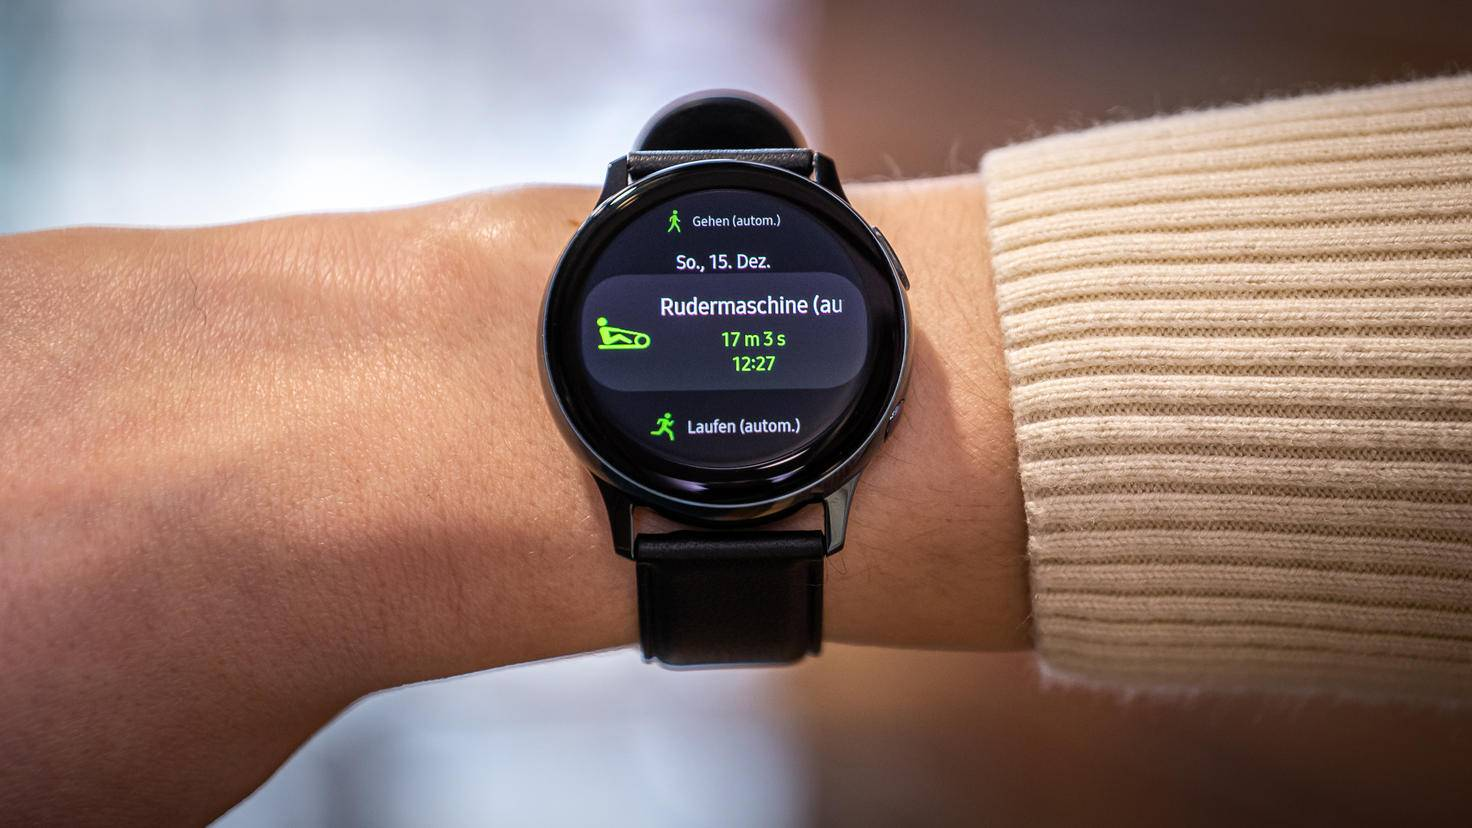 Samsung Galaxy Watch Active 2: workout detection